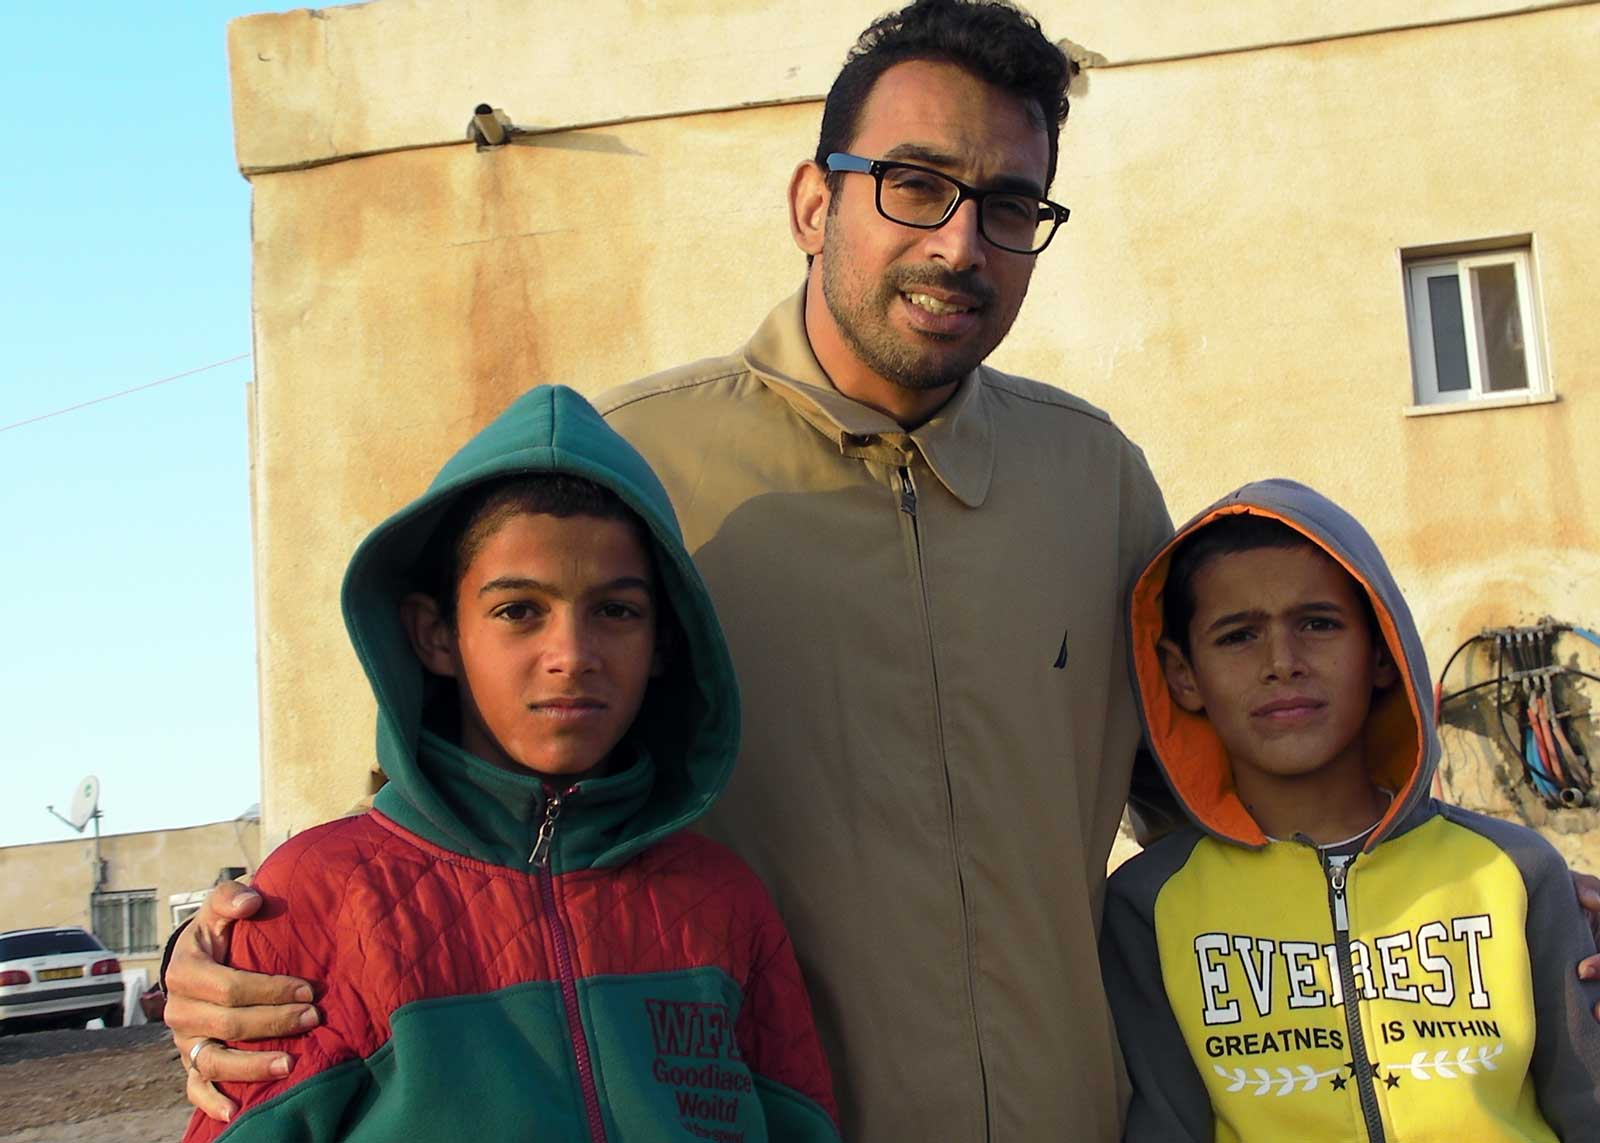 Abo Kweder with two young residents of Umm al-Hiran. Credit: The Oakland Institute